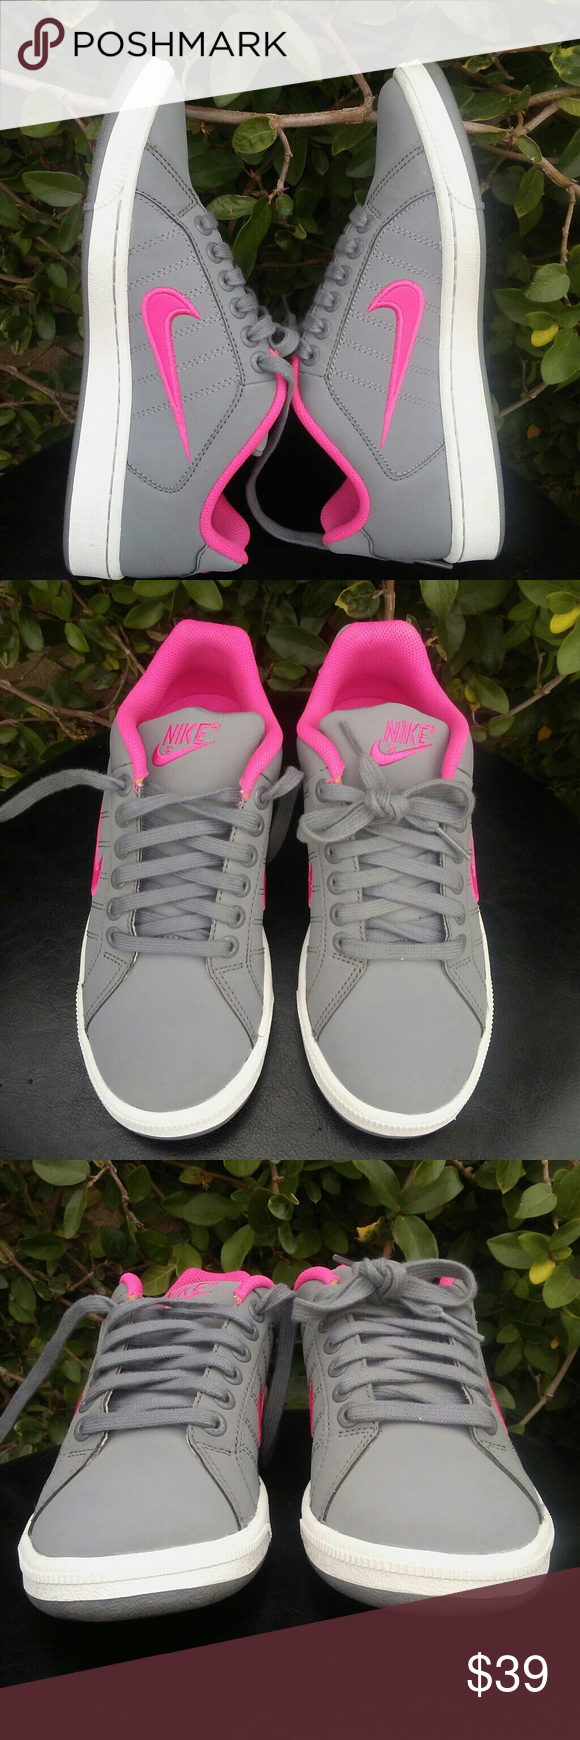 Shop Women's Nike Pink Gray size 7 Athletic Shoes at a discounted price at  Poshmark.